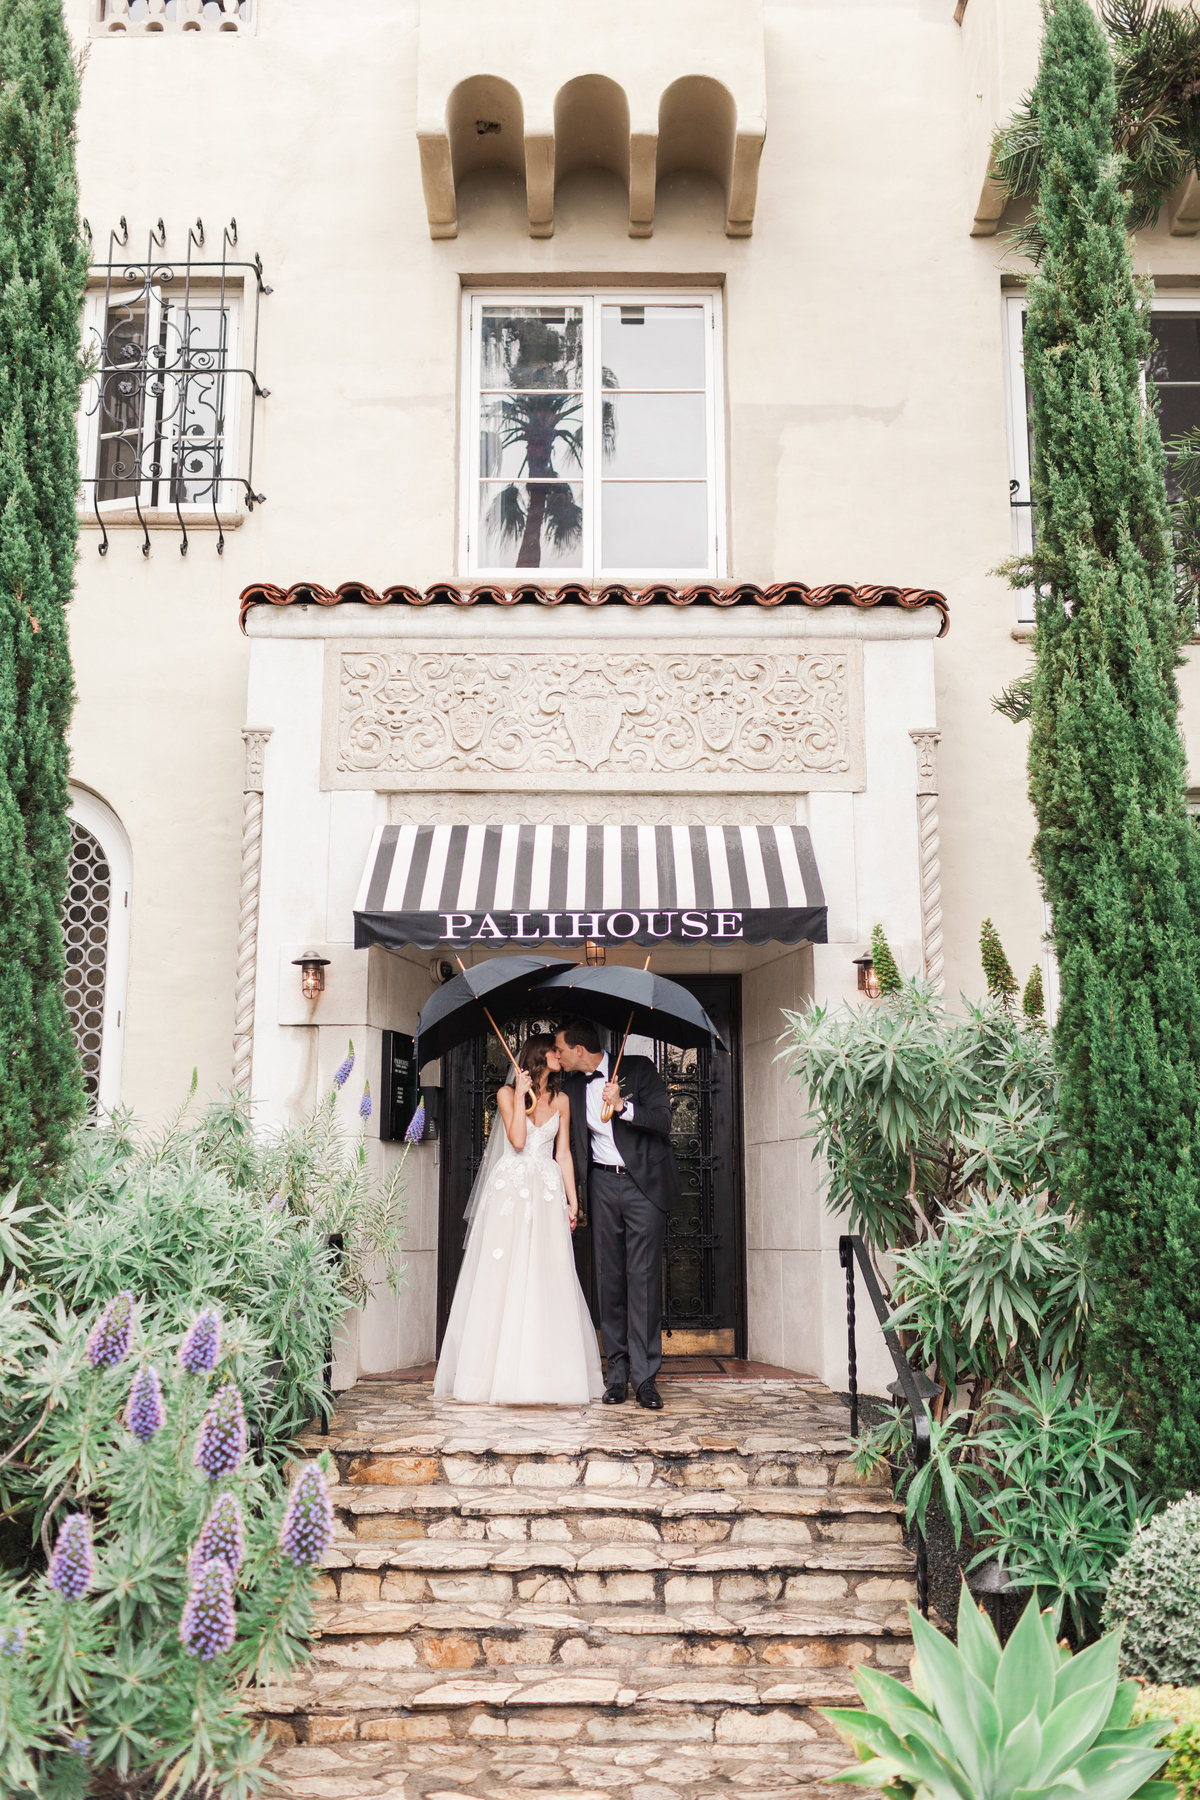 Palihouse_Cielo_Farms_Malibu_Rustic_Wedding_Valorie_Darling_Photography - 29 of 107